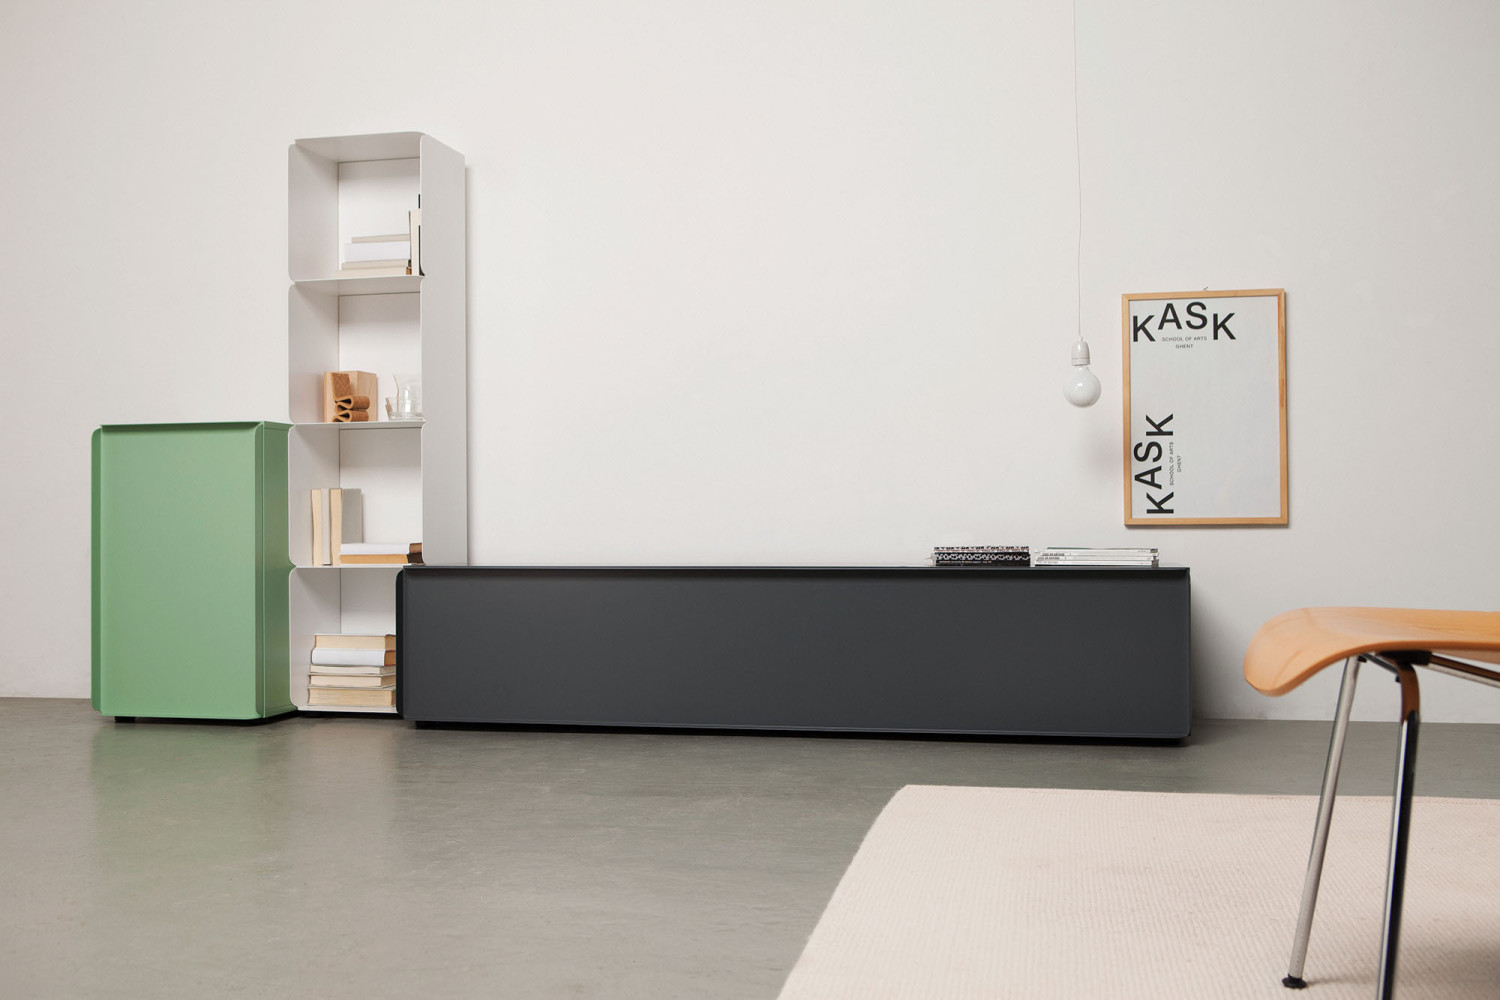 Collar Storage unit from Quodes.